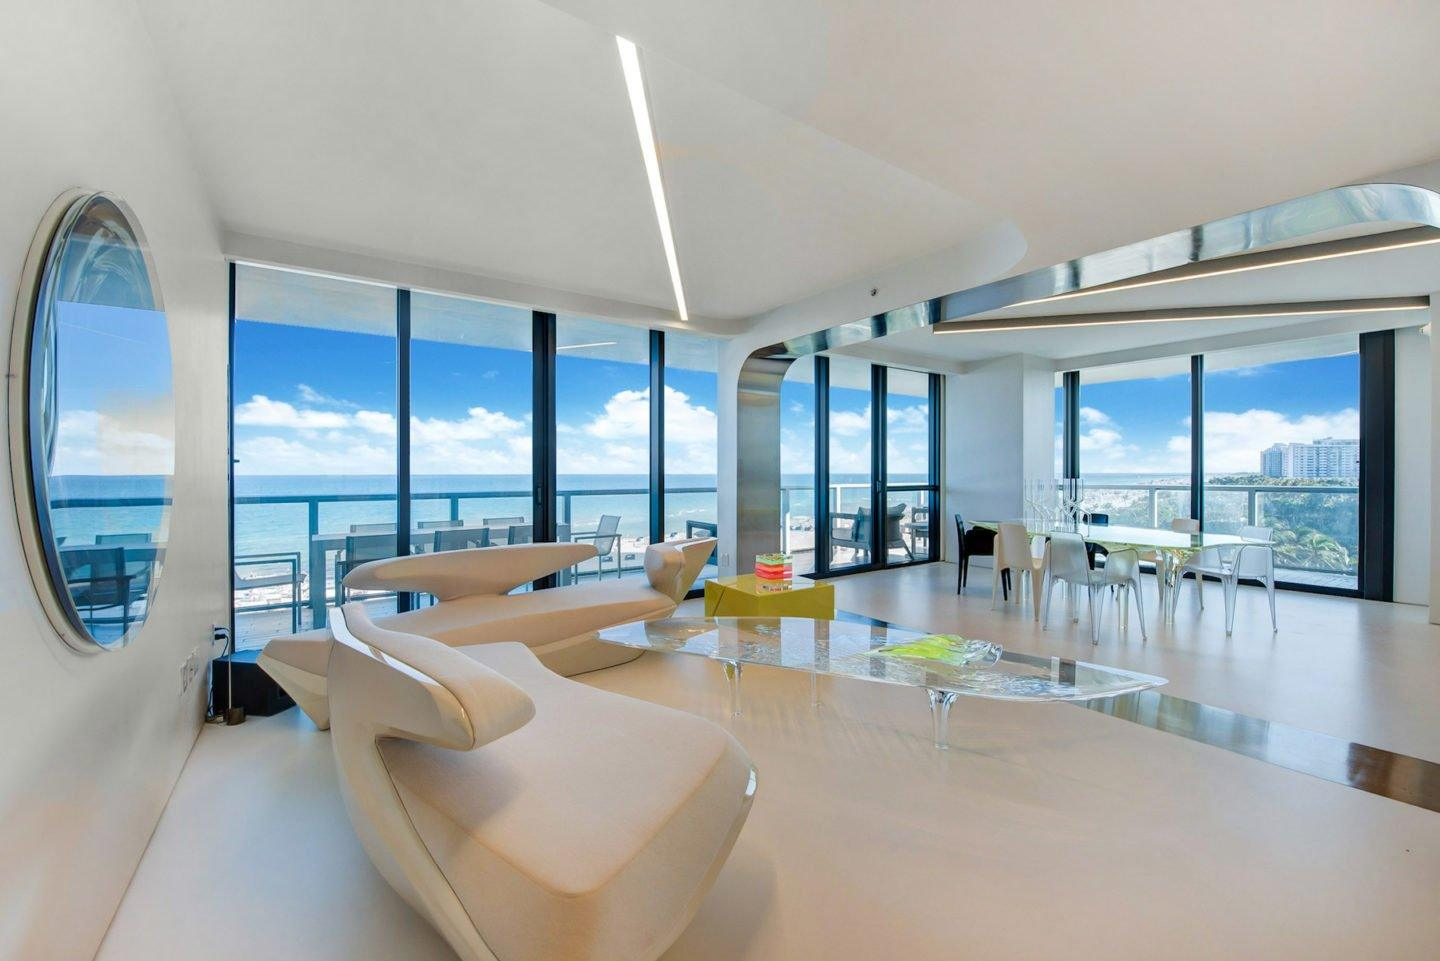 iGNANT-Architecture-Zaha-Hadid-Beach-Apartment-002